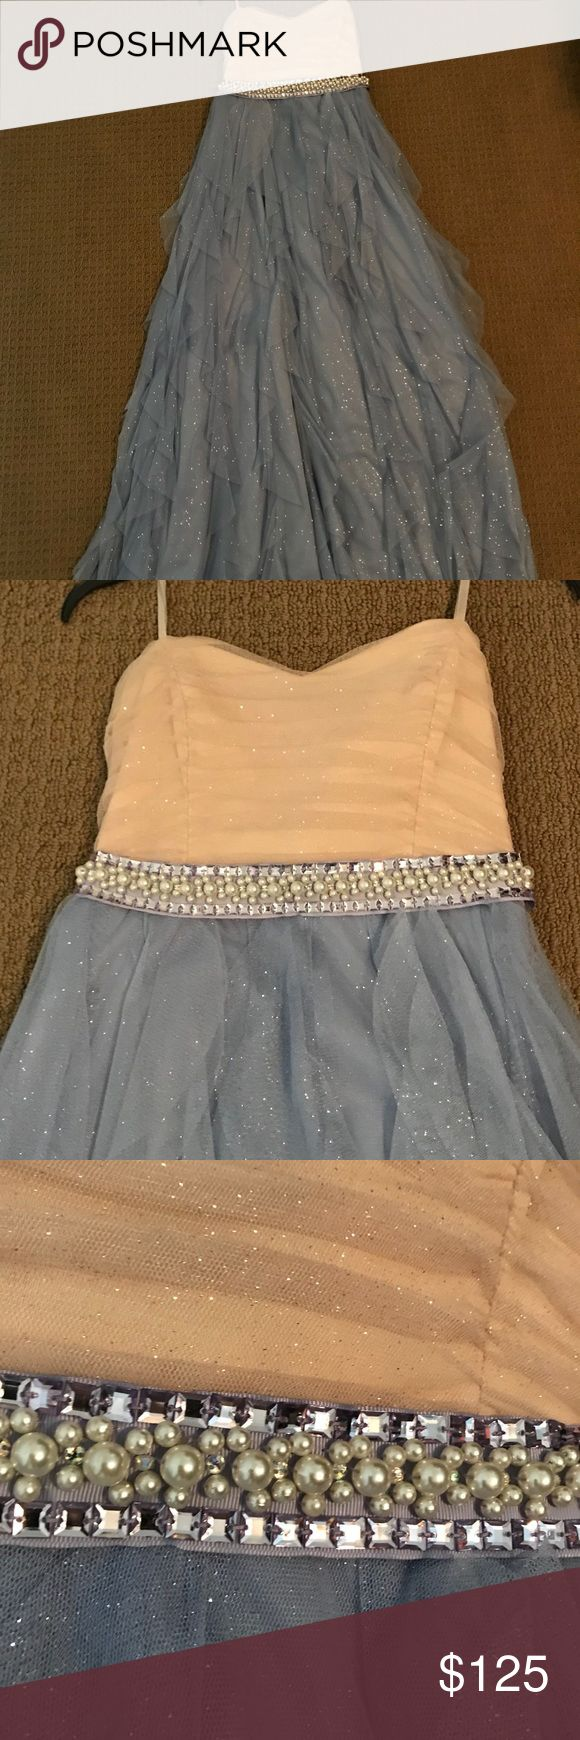 Prom dress Strapless sparkly cream and periwinkle dress with pearl and jeweled waist band Dillards Dresses Prom